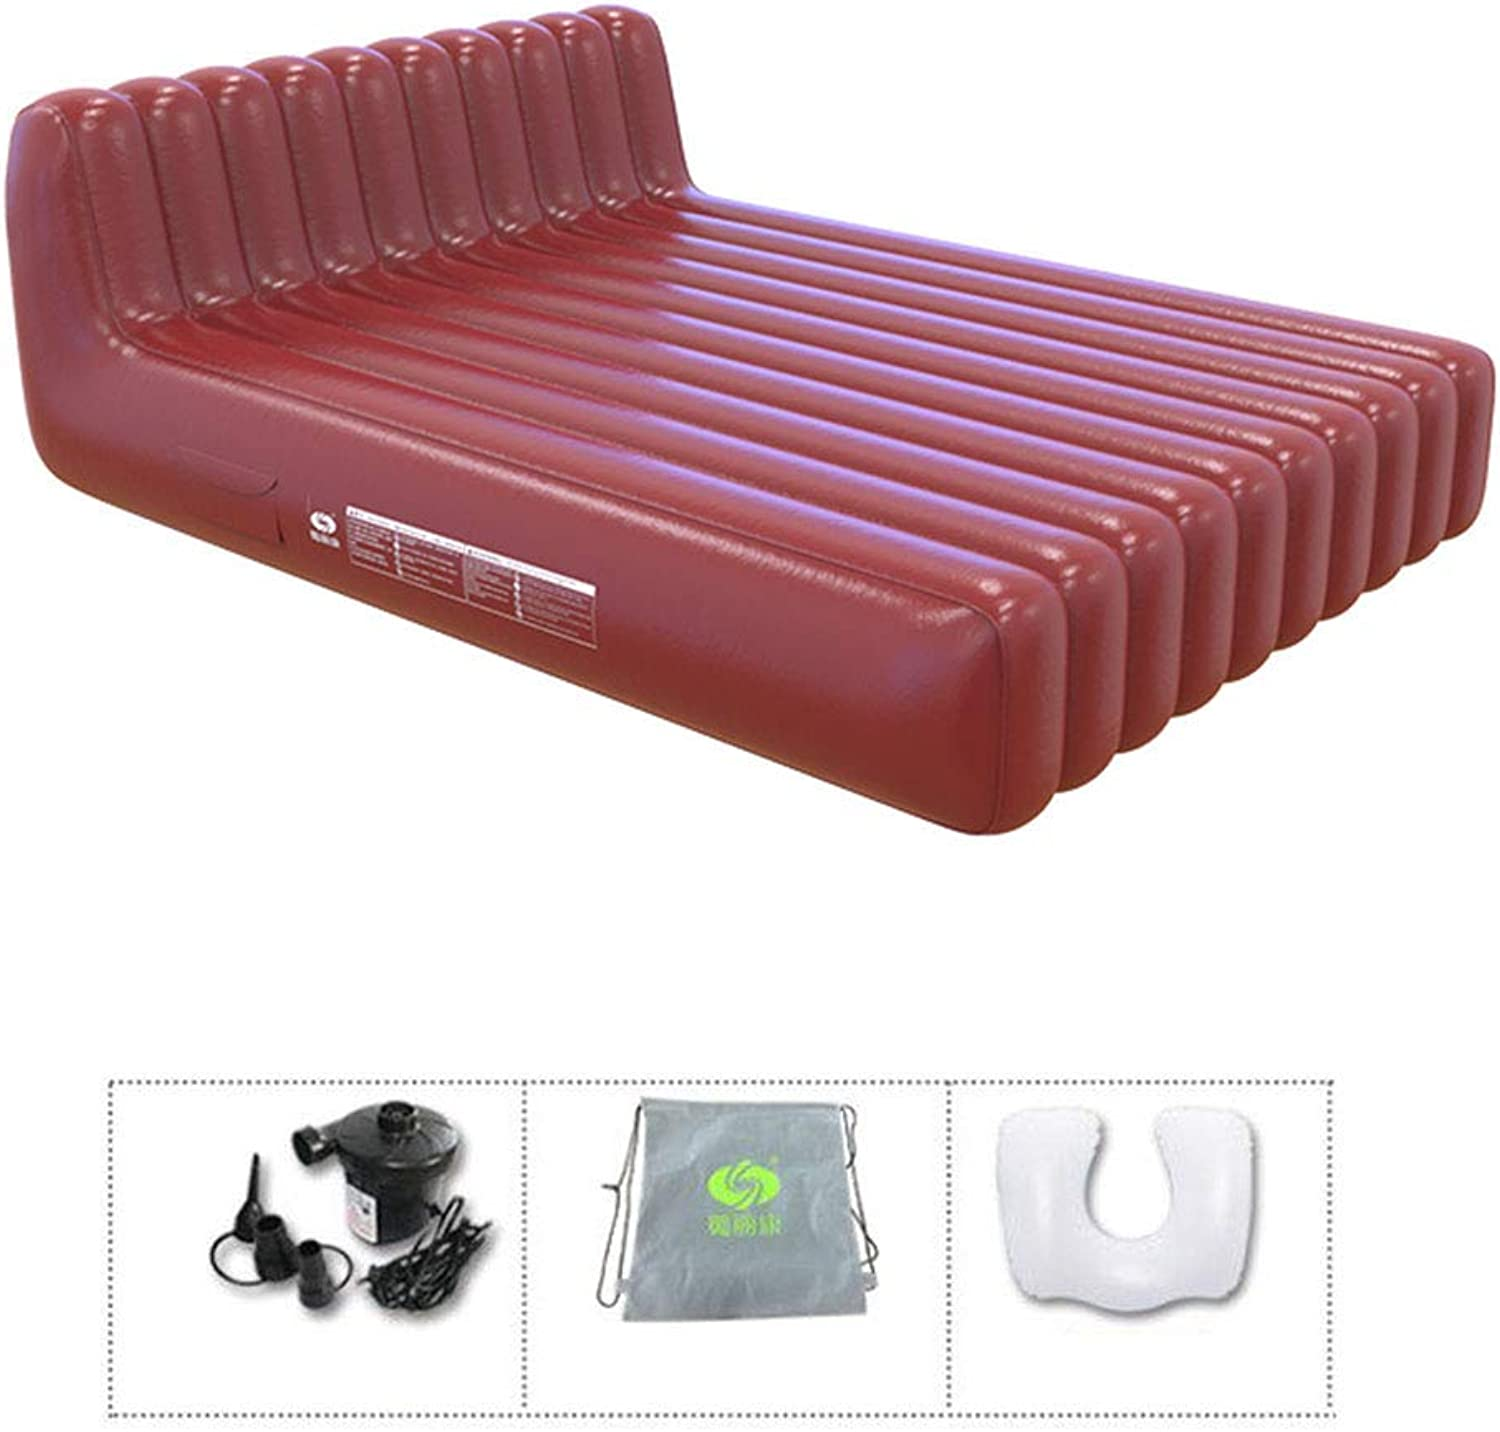 Double Deluxe Heightening Inflatable Electric Pump with A KingSize Thick PVC Inflatable Mattress Outdoor Portable Travel Pouch with Air Bed Rest